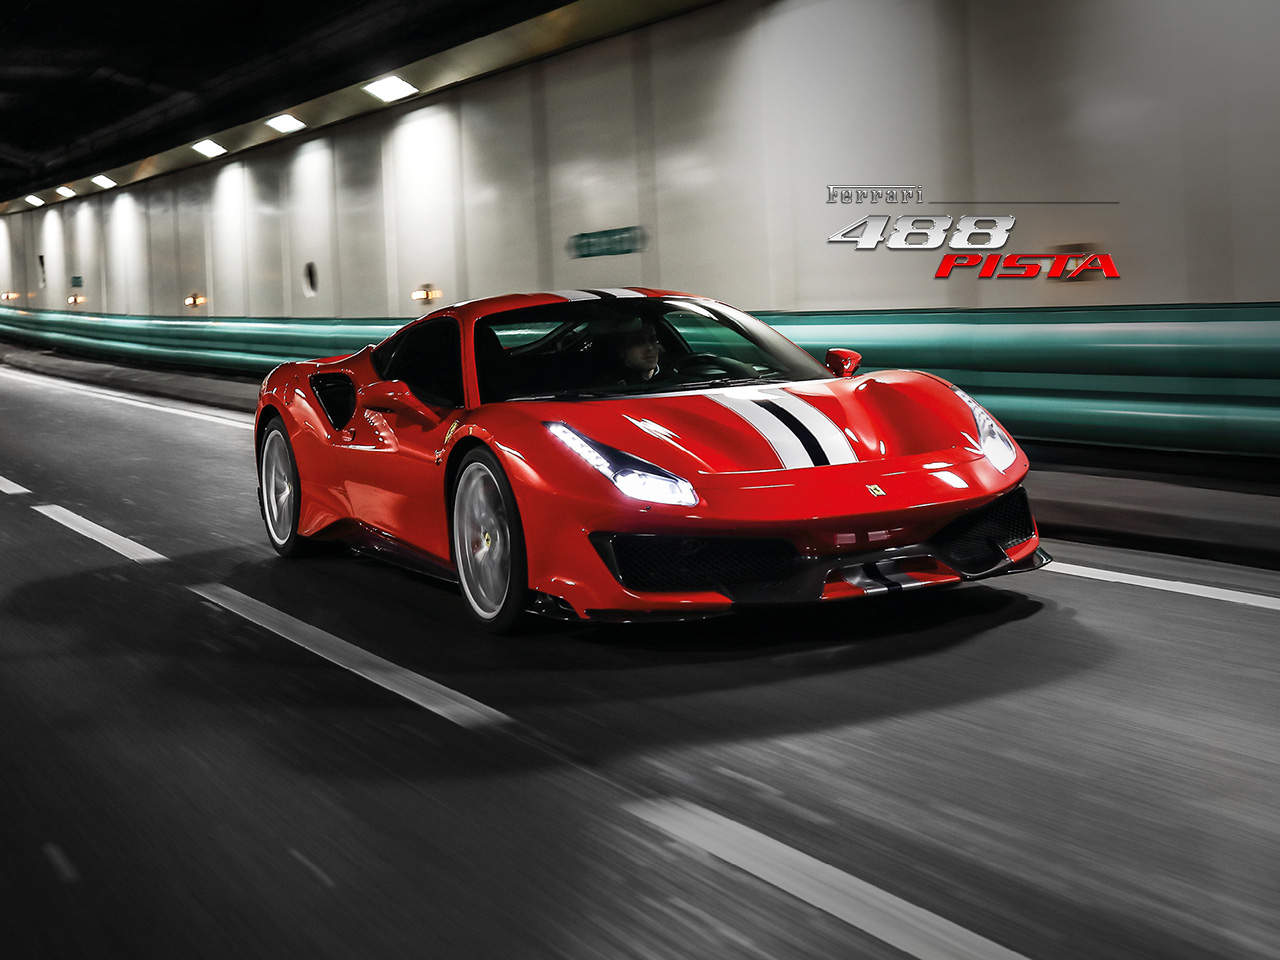 Ferrari 488 Pista: Ready To Go